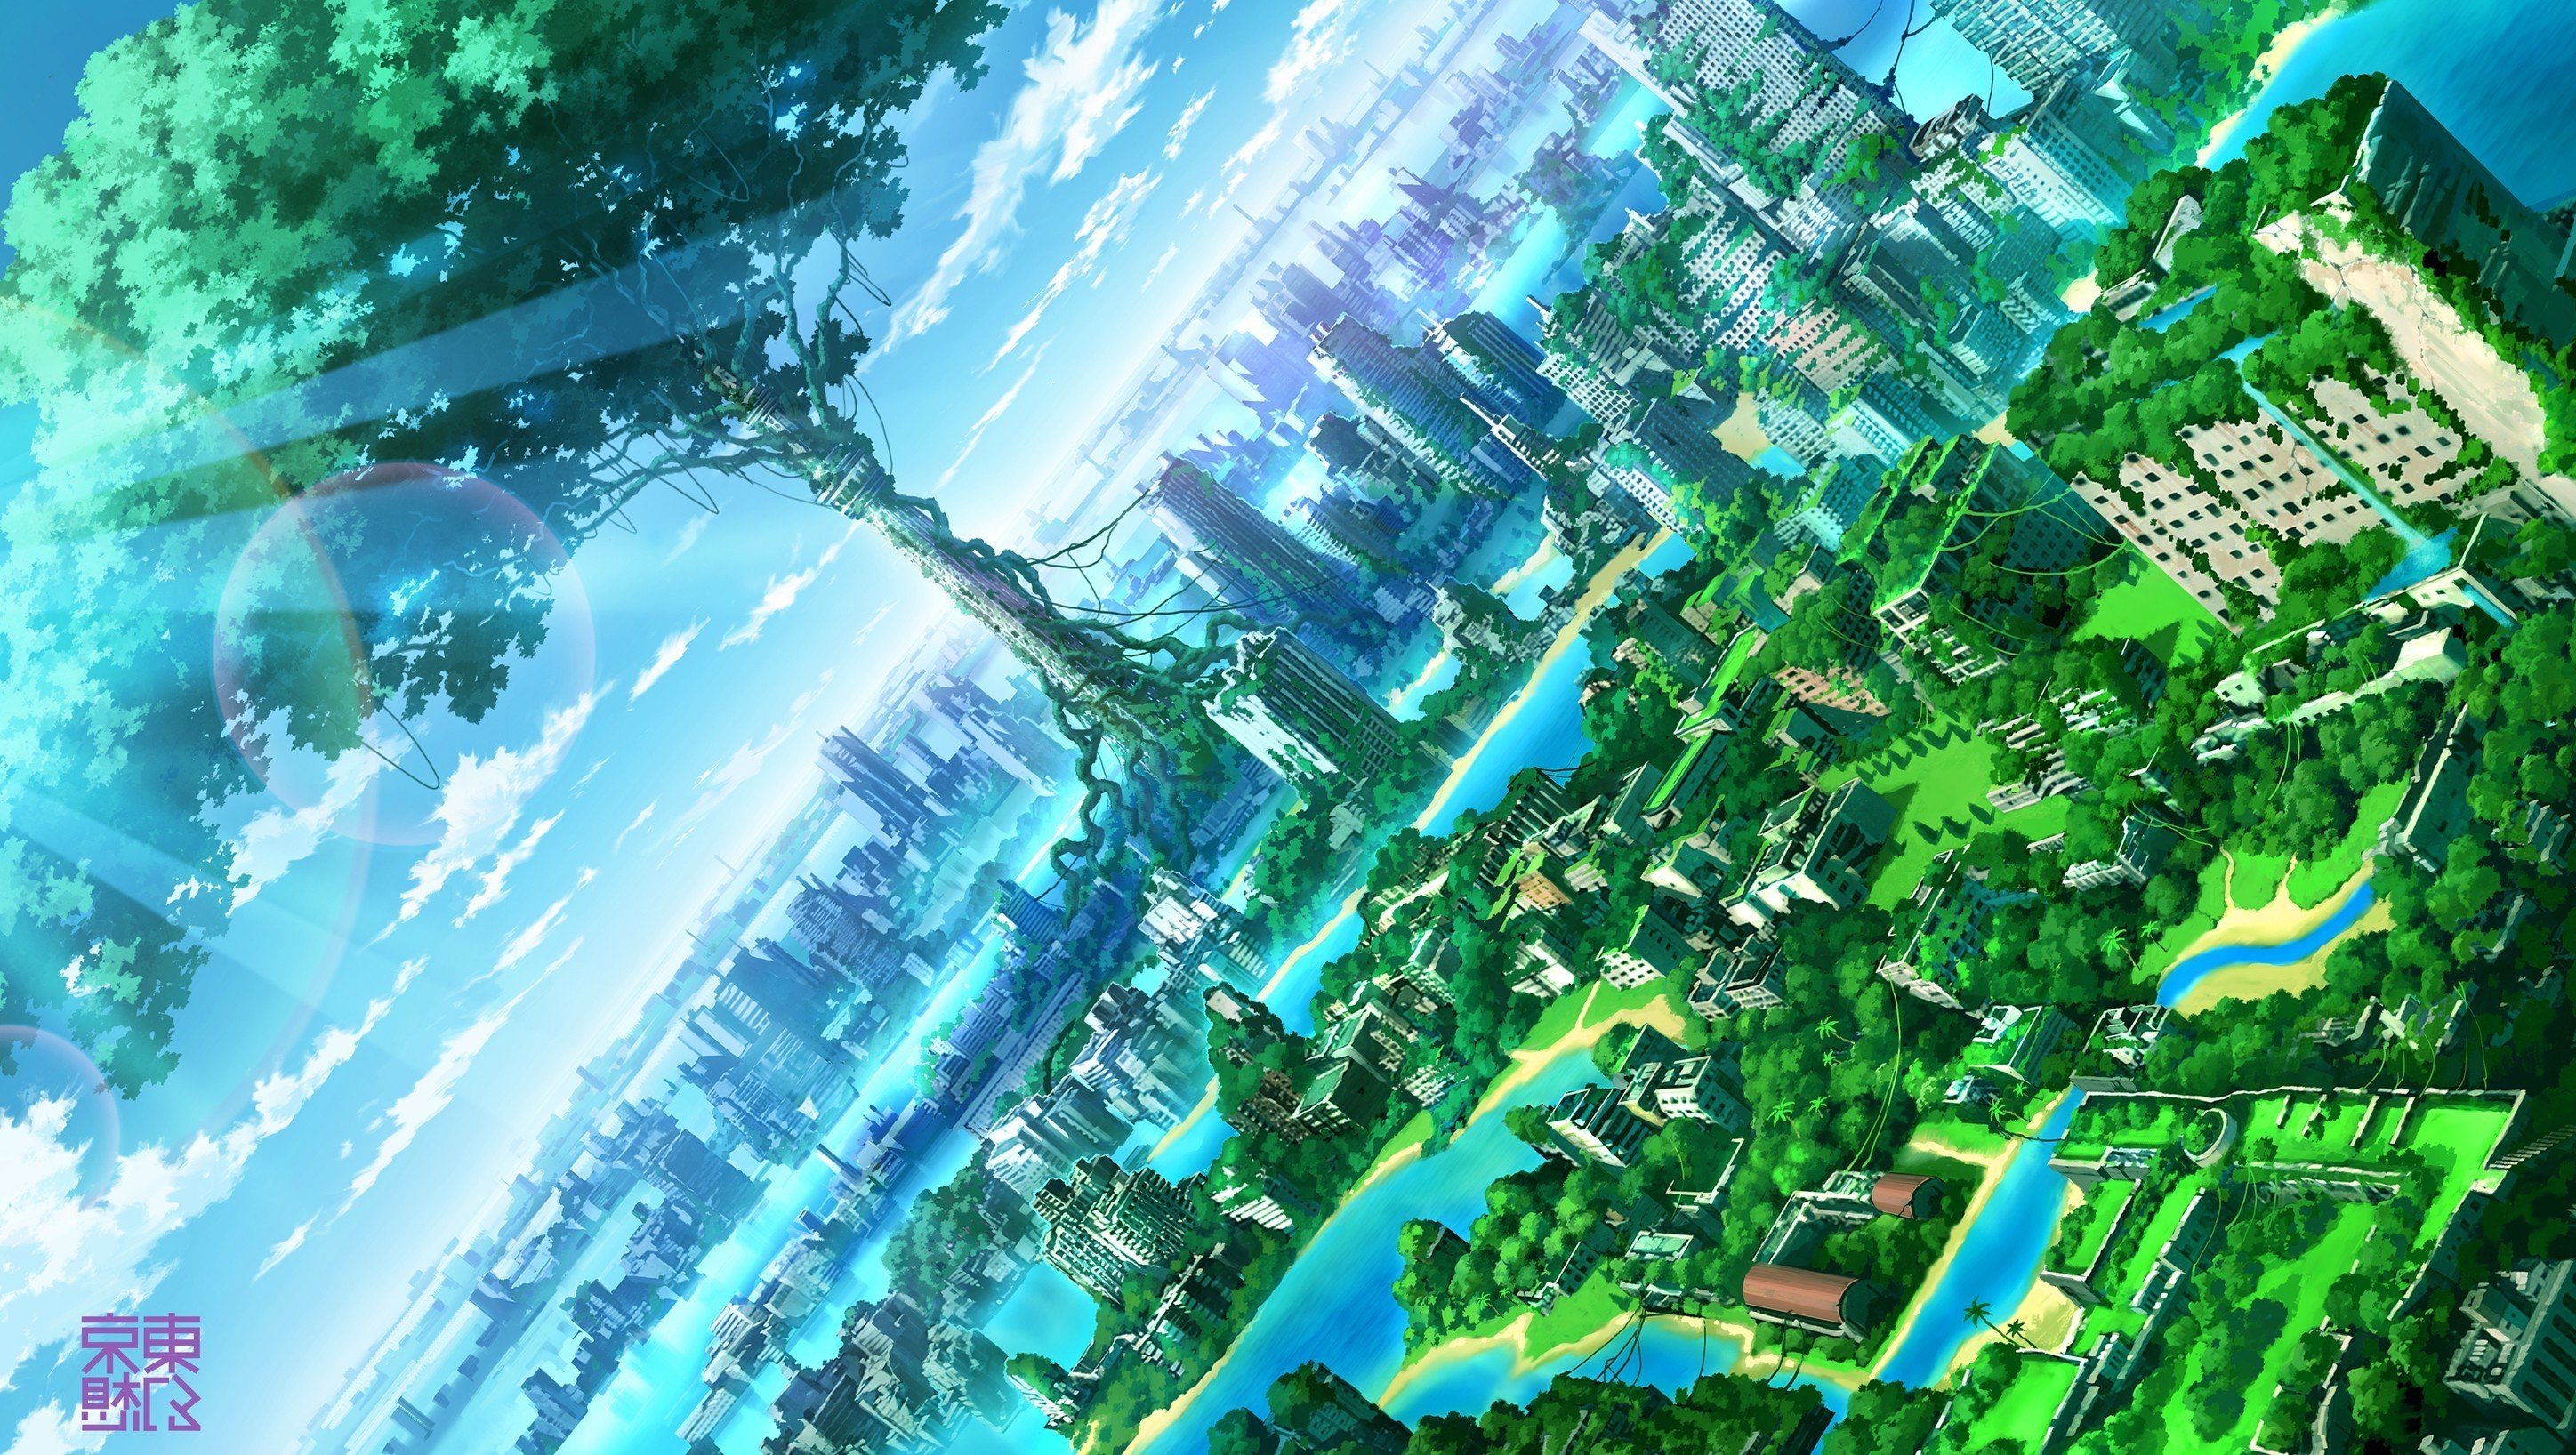 Res: 2896x1636, anime, Artwork, Fantasy Art, City, Nature Wallpapers HD / Desktop and  Mobile Backgrounds